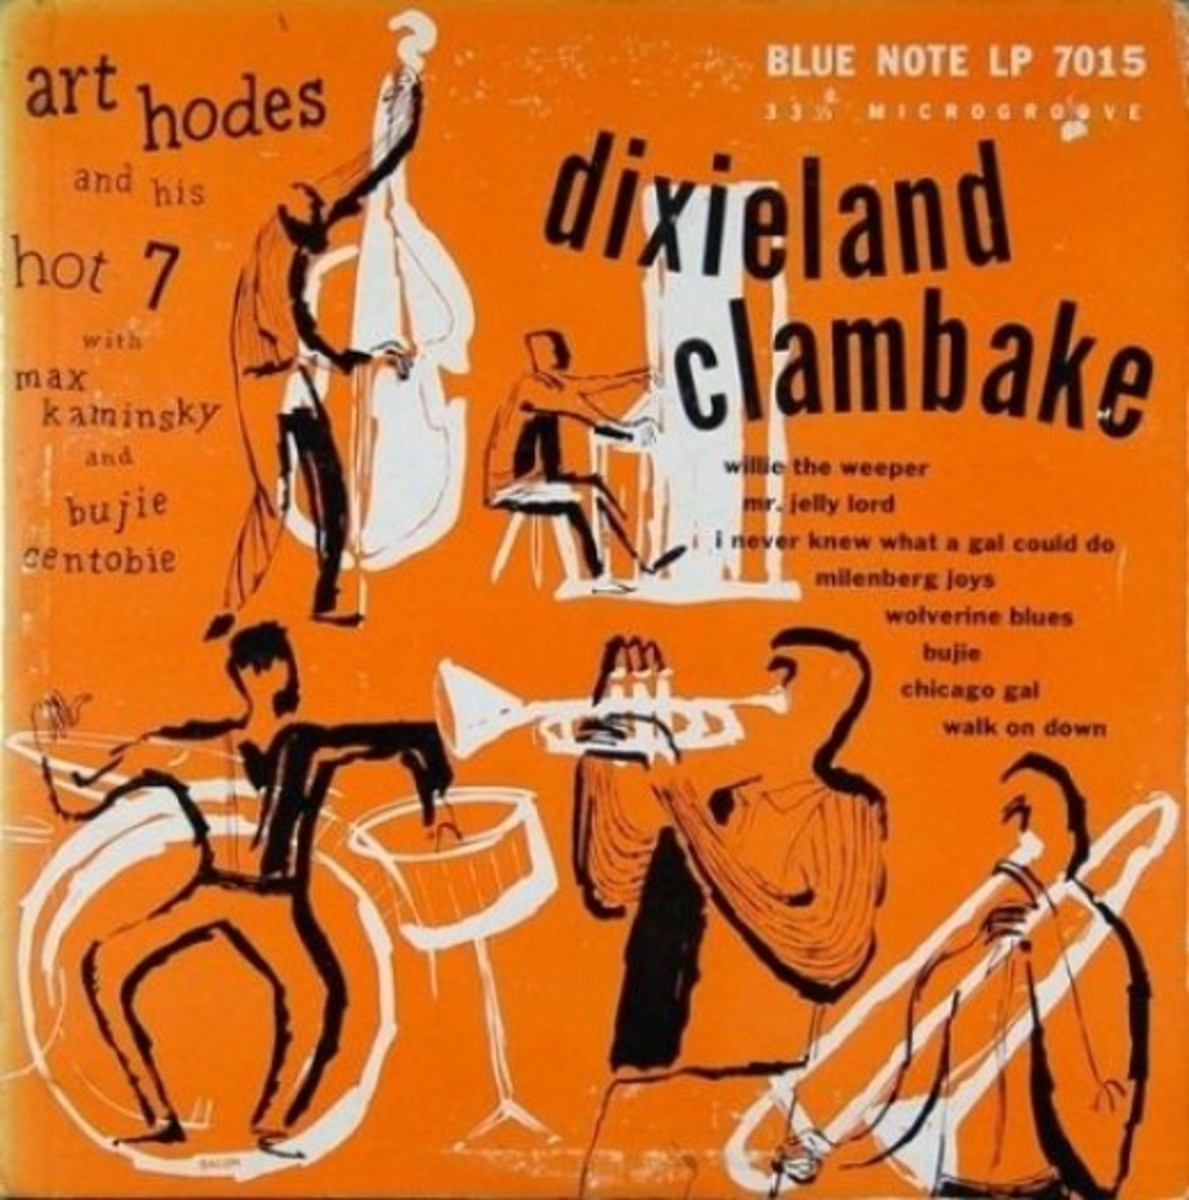 "Art Hodes & His Hot 7 ""Dixieland Clambake"" BLP 7015  10"" LP Vinyl Microgroove Record  (1951) Cover Art & Design by Paul Bacon"